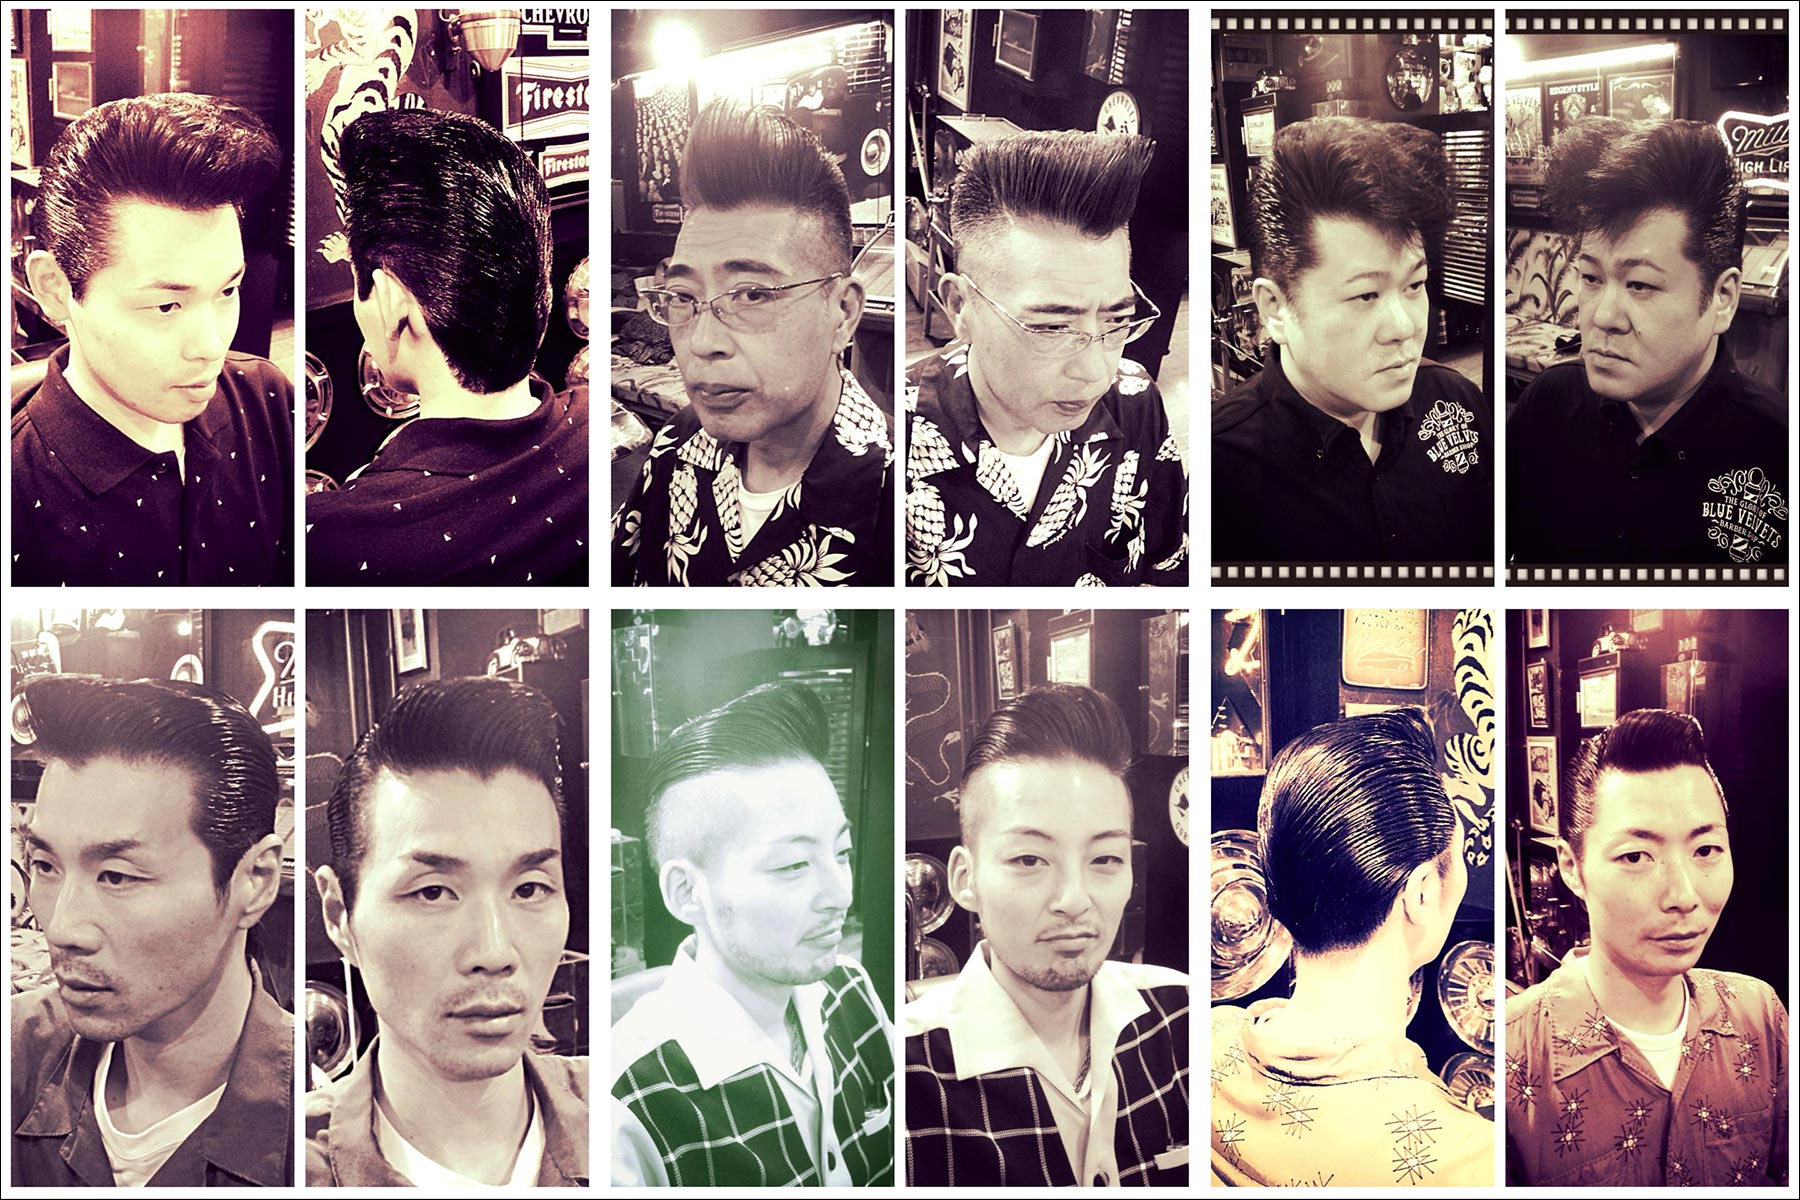 B&W portraits of Japanese patrons in perfectly groomed 1950s rockabilly pompadours from Blue Velvet's barber shop. Ponyboy magazine New York.